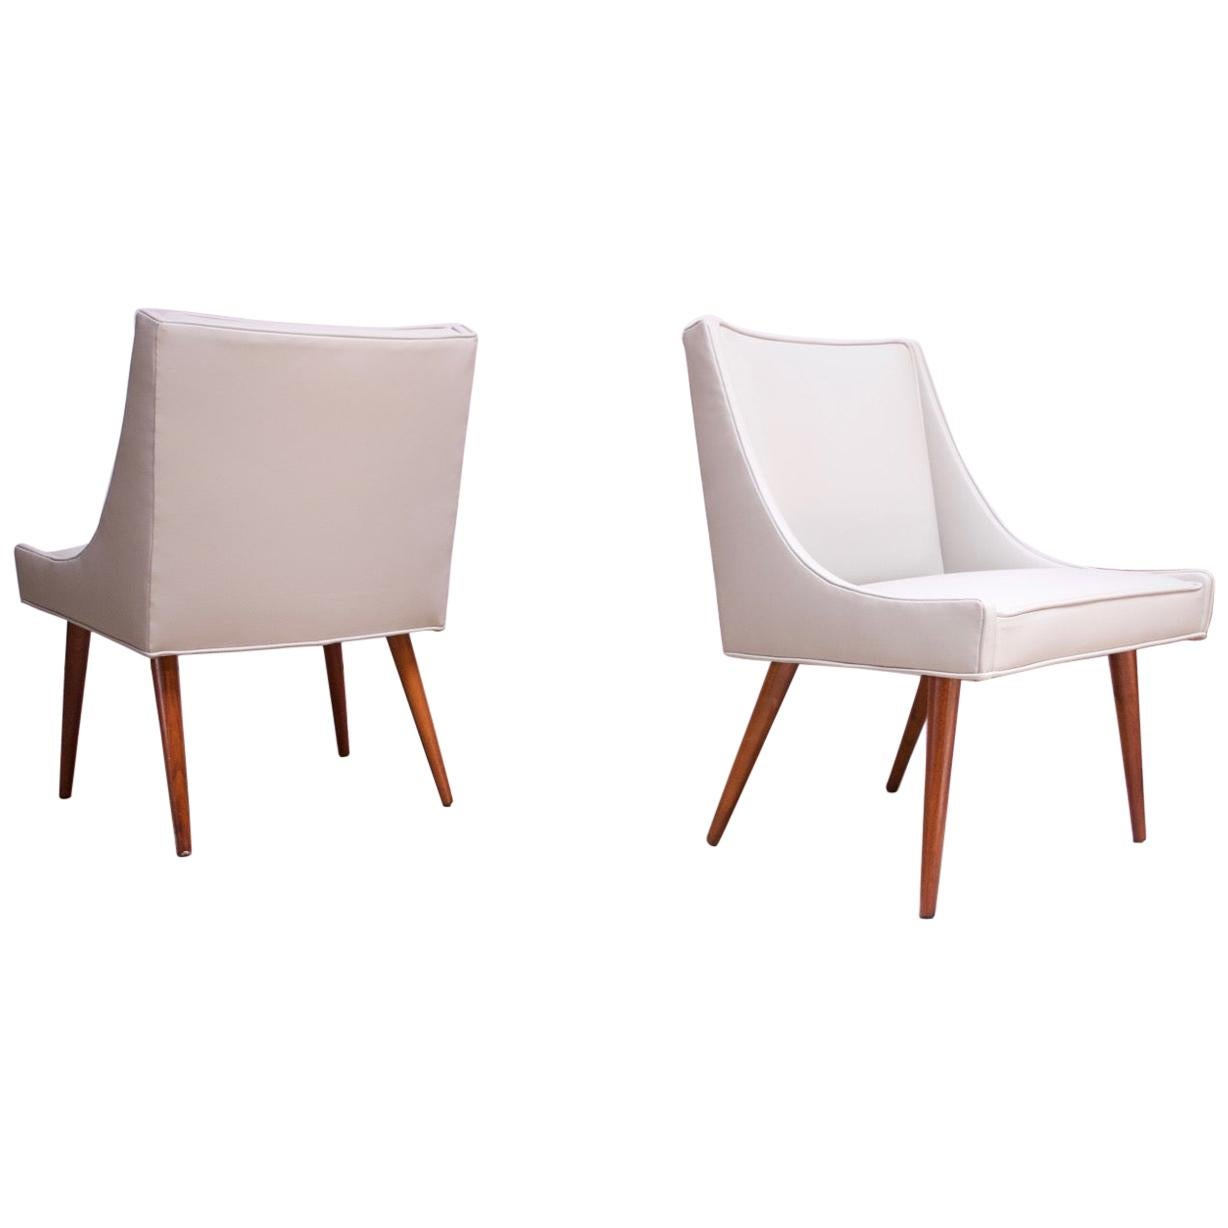 Pair of Vintage Diminutive Walnut and Leather Slipper Chairs by Milo Baughman